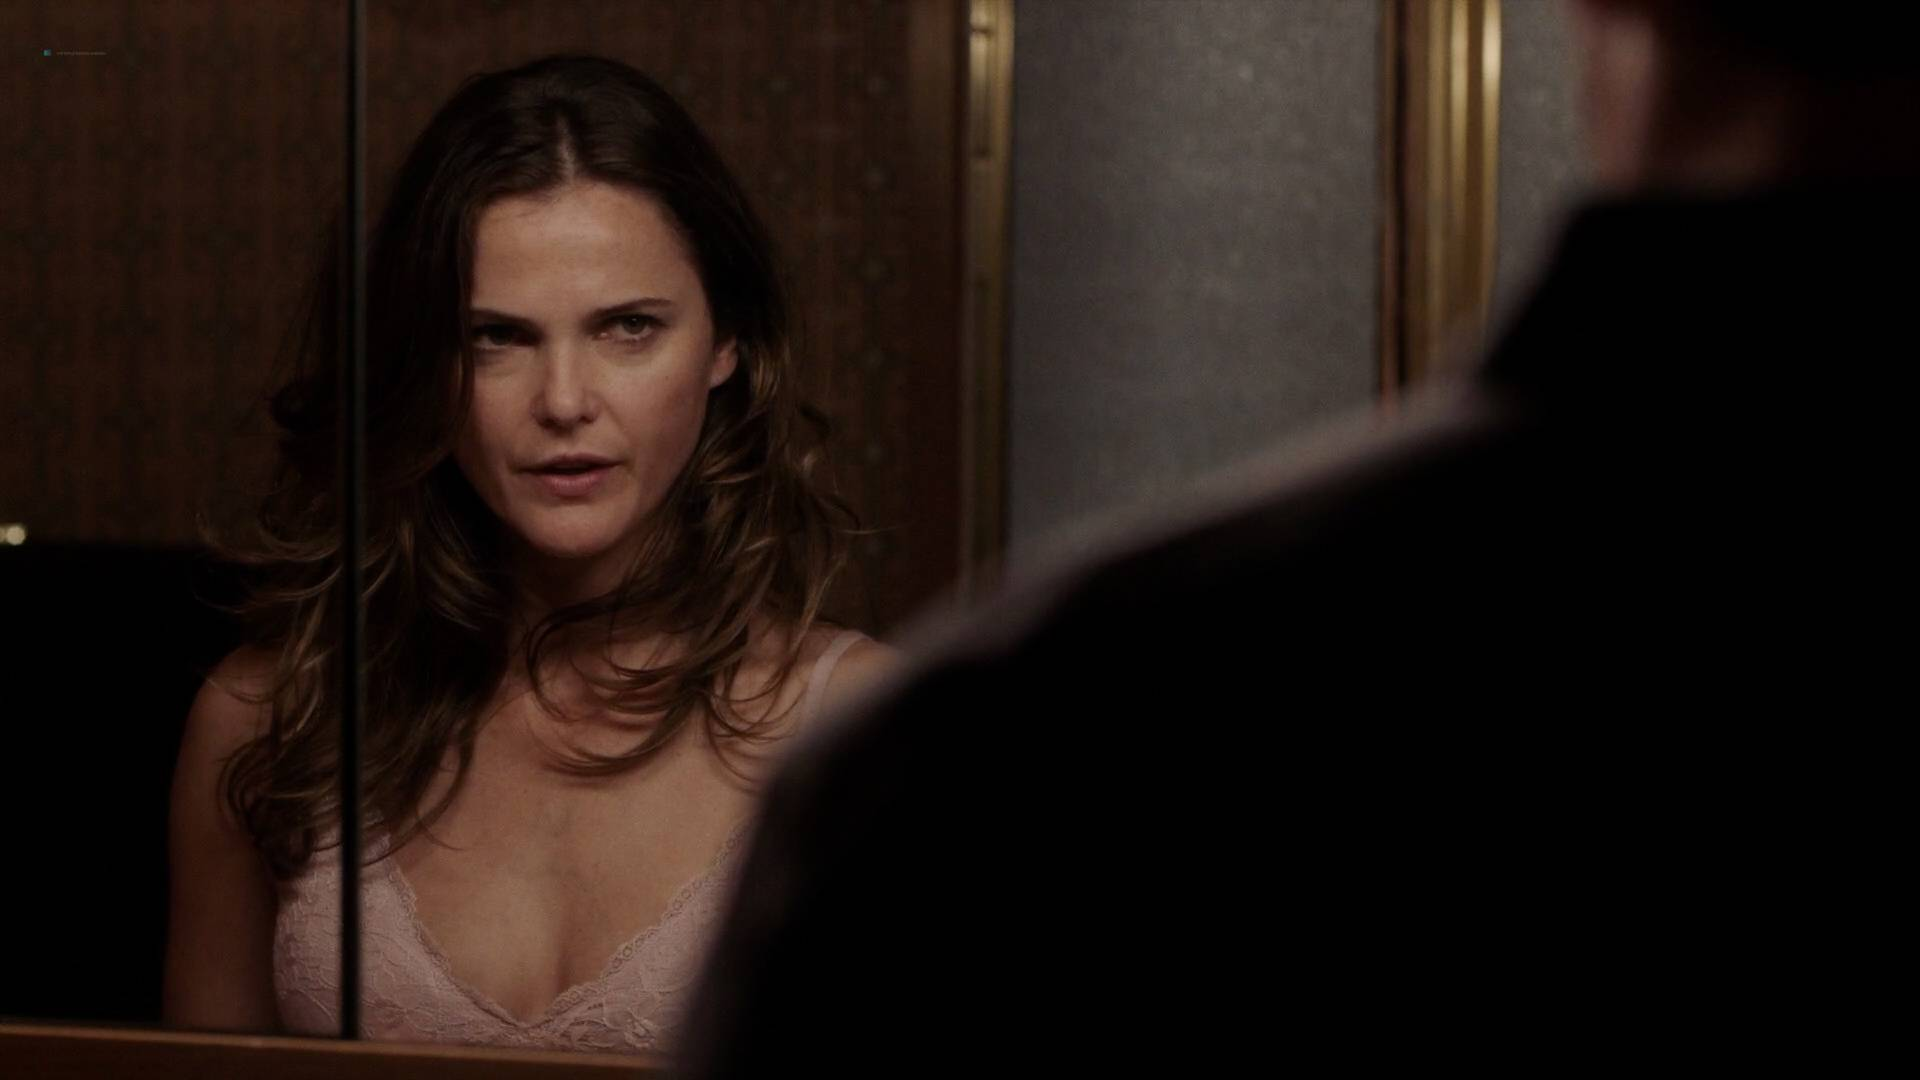 Keri Russell nude butt in the shower -The Americans (2017) s5e2 HD 1080p (5)